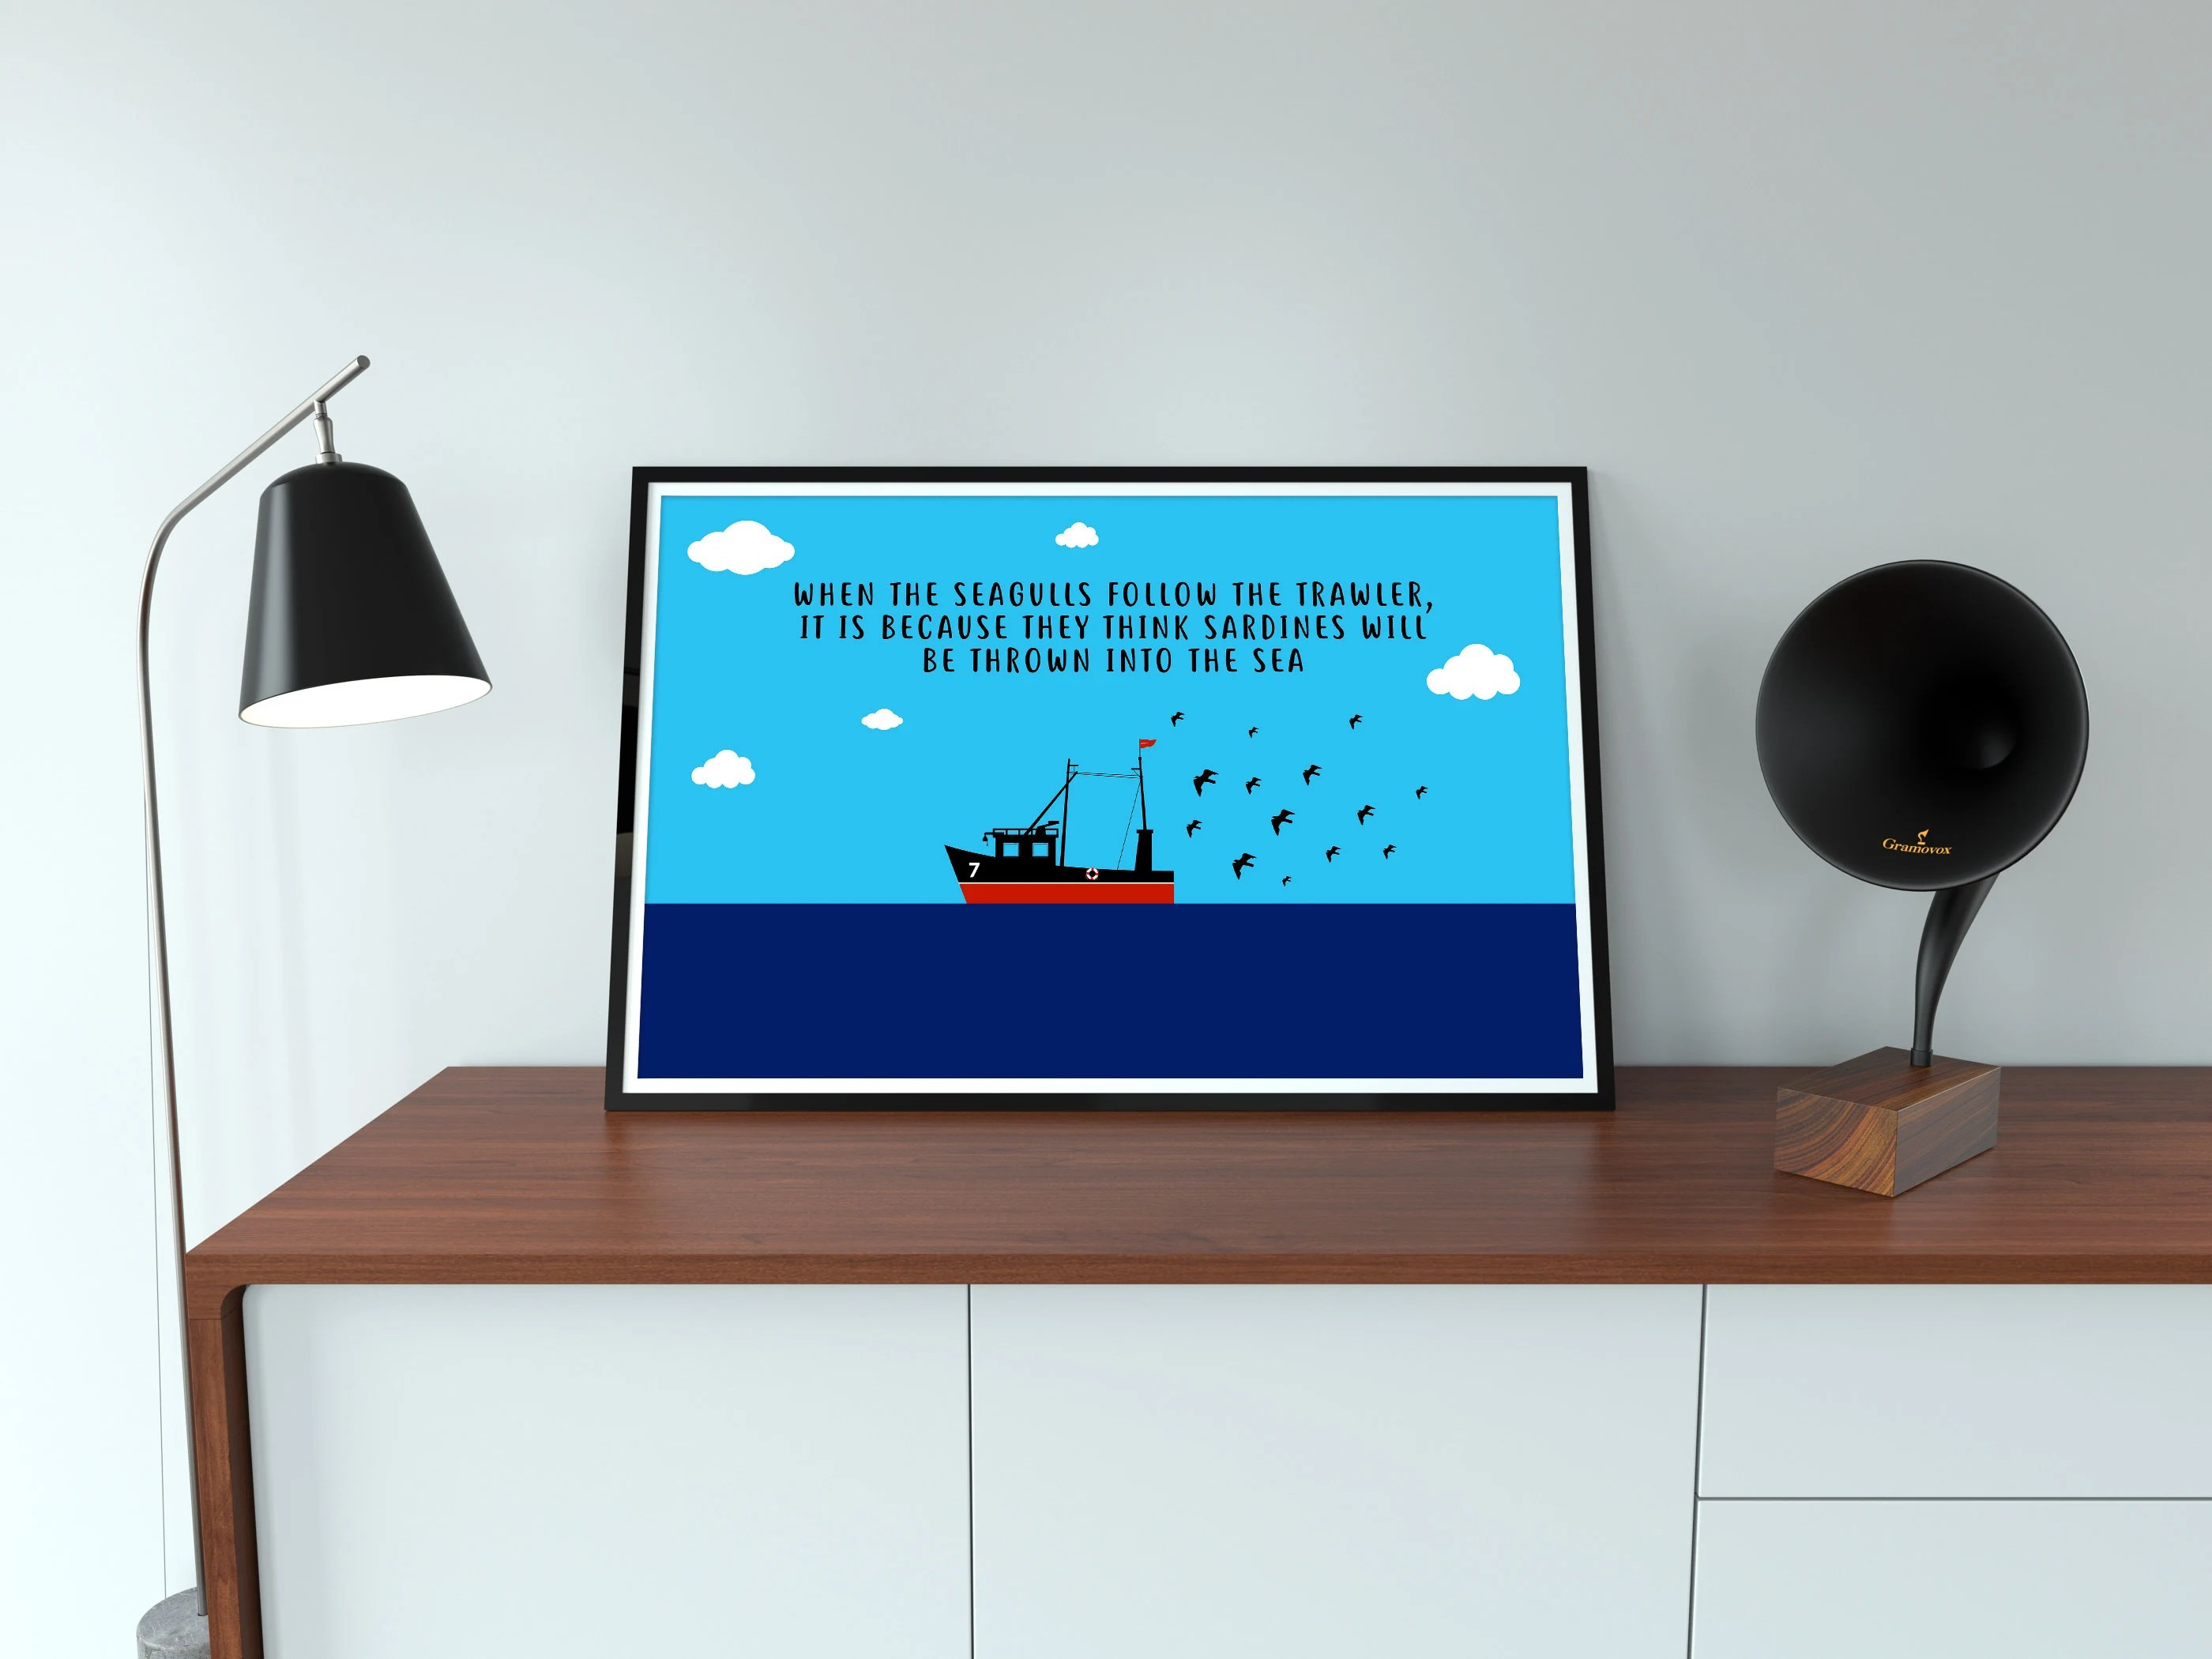 When the seagulls follow the trawler, it is because they think sardines will be thrown into the sea. Eric Cantona Seagulls And Sardines Quote High Quality Poster Etsy